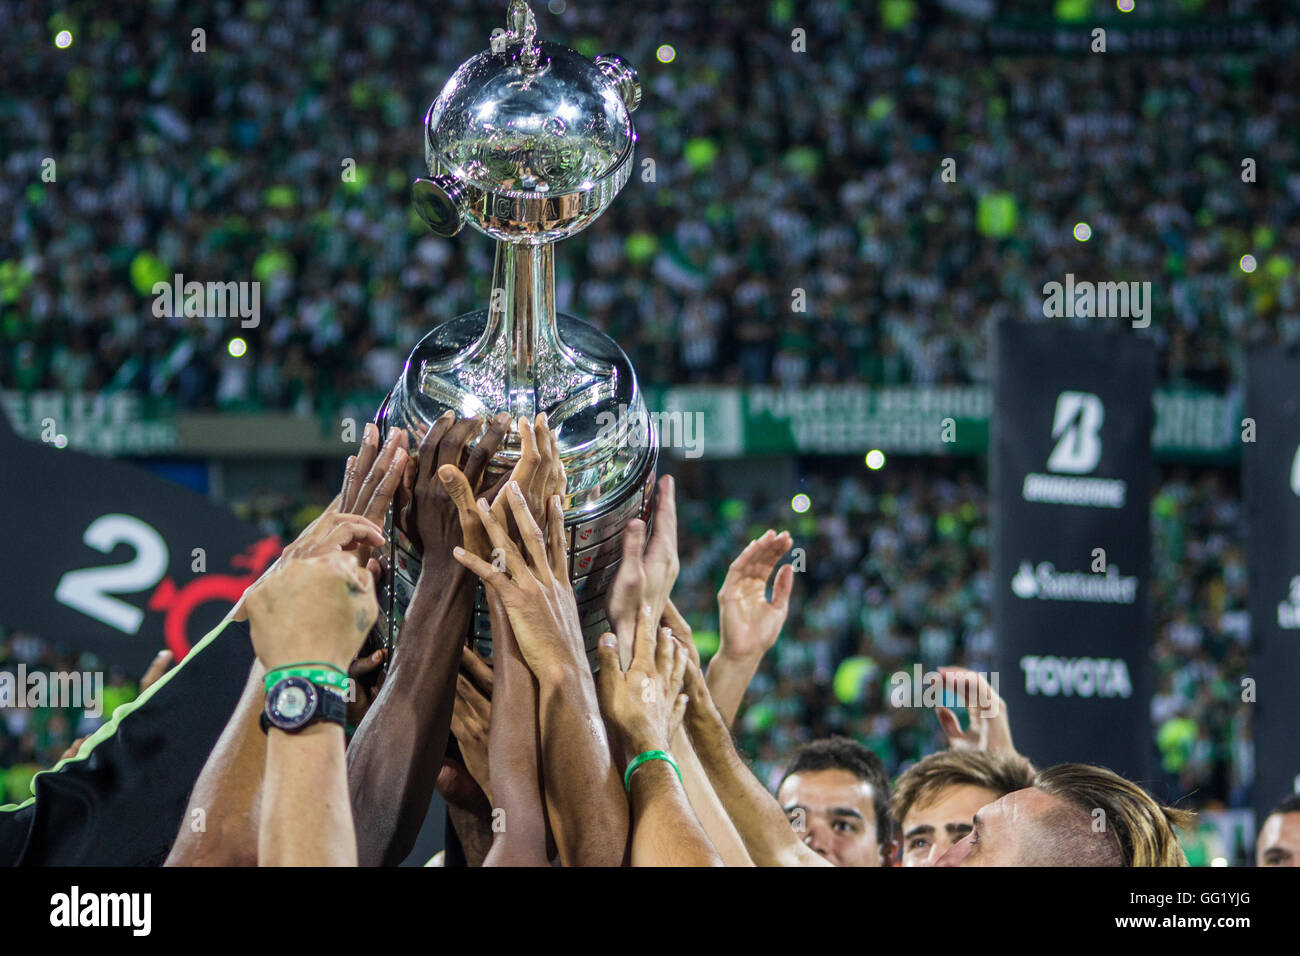 Players of Atletico Nacional lift the trophy after a second leg final match between Atletico Nacional and Independiente - Stock Image